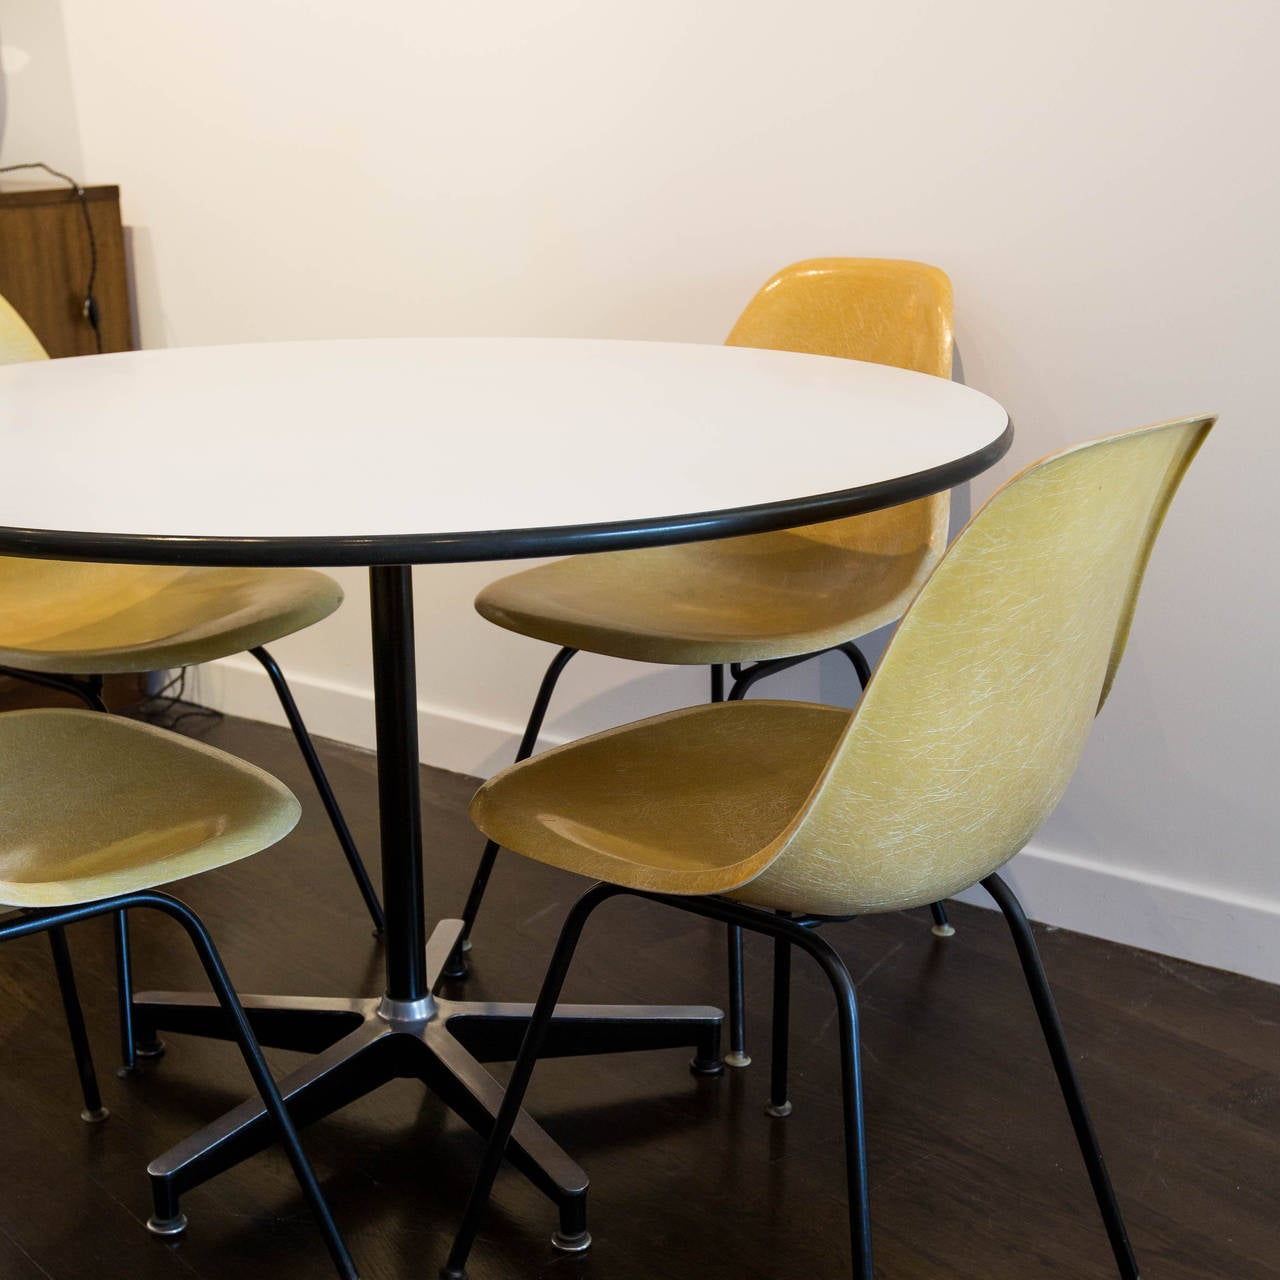 charles eames 650 dining table and four shell chairs by herman miller 1957 at 1stdibs. Black Bedroom Furniture Sets. Home Design Ideas